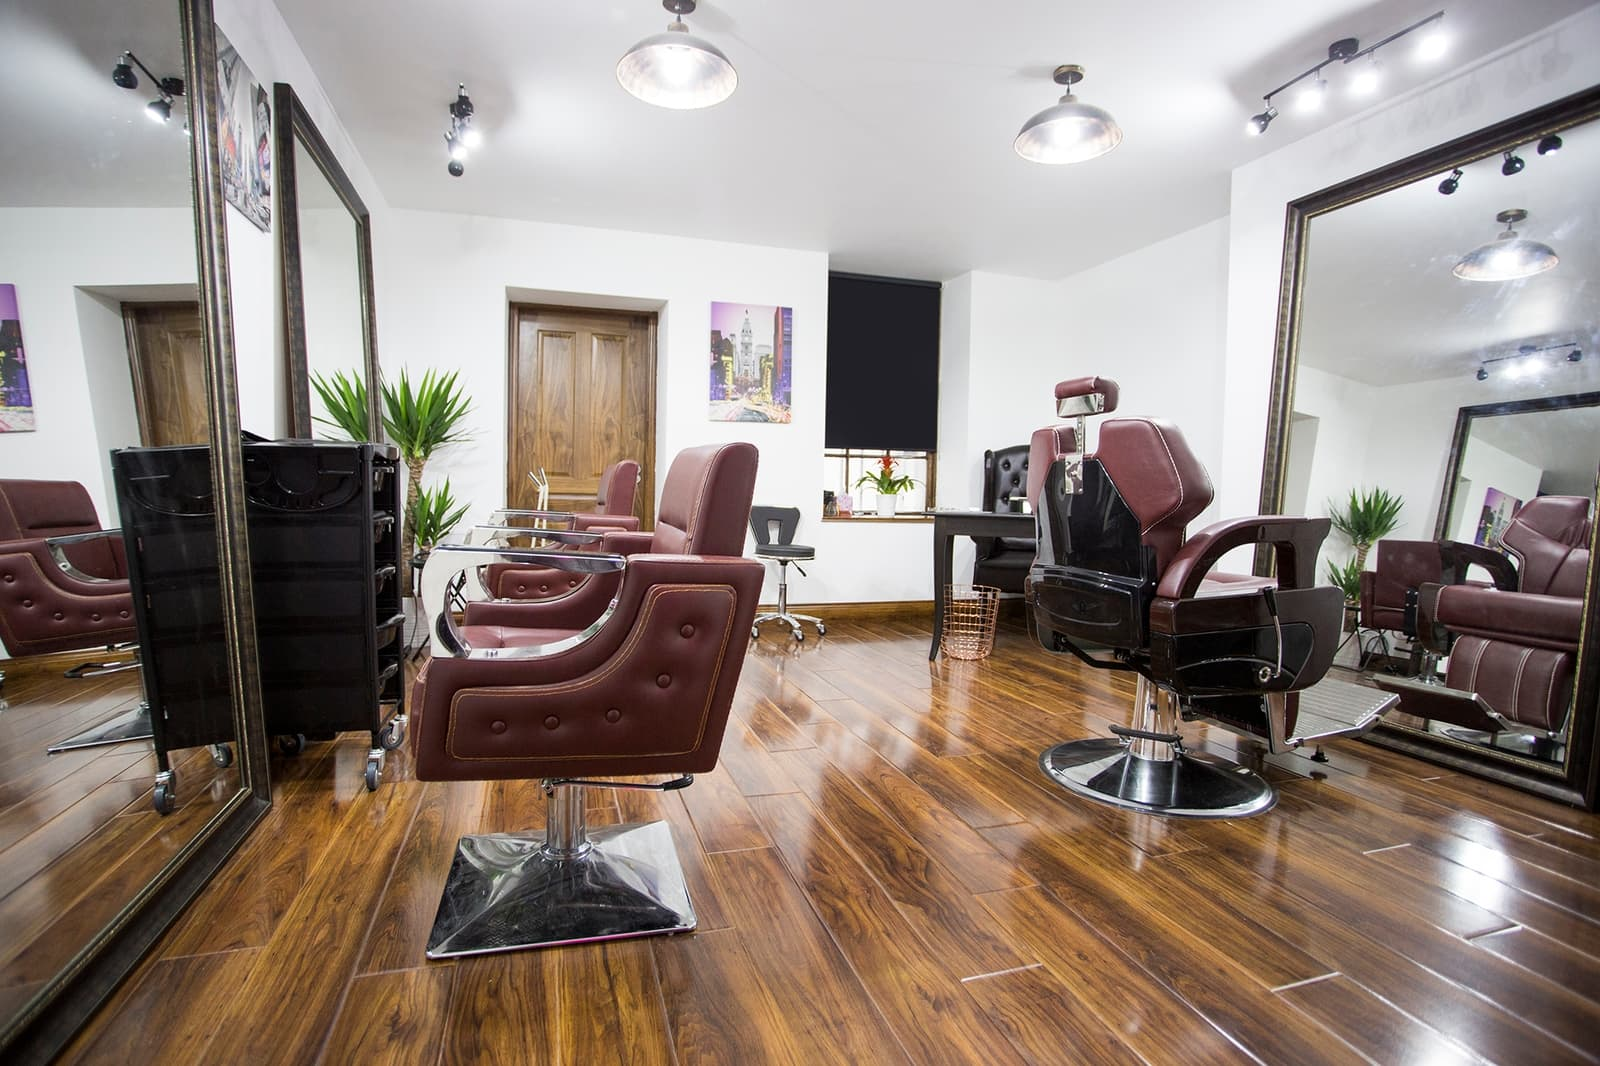 hairdressing services offered in salons View the latest jcpenney salon prices and see how you can save money on your next haircut at the jcpenney salon services offered beauty salon: i went to a.